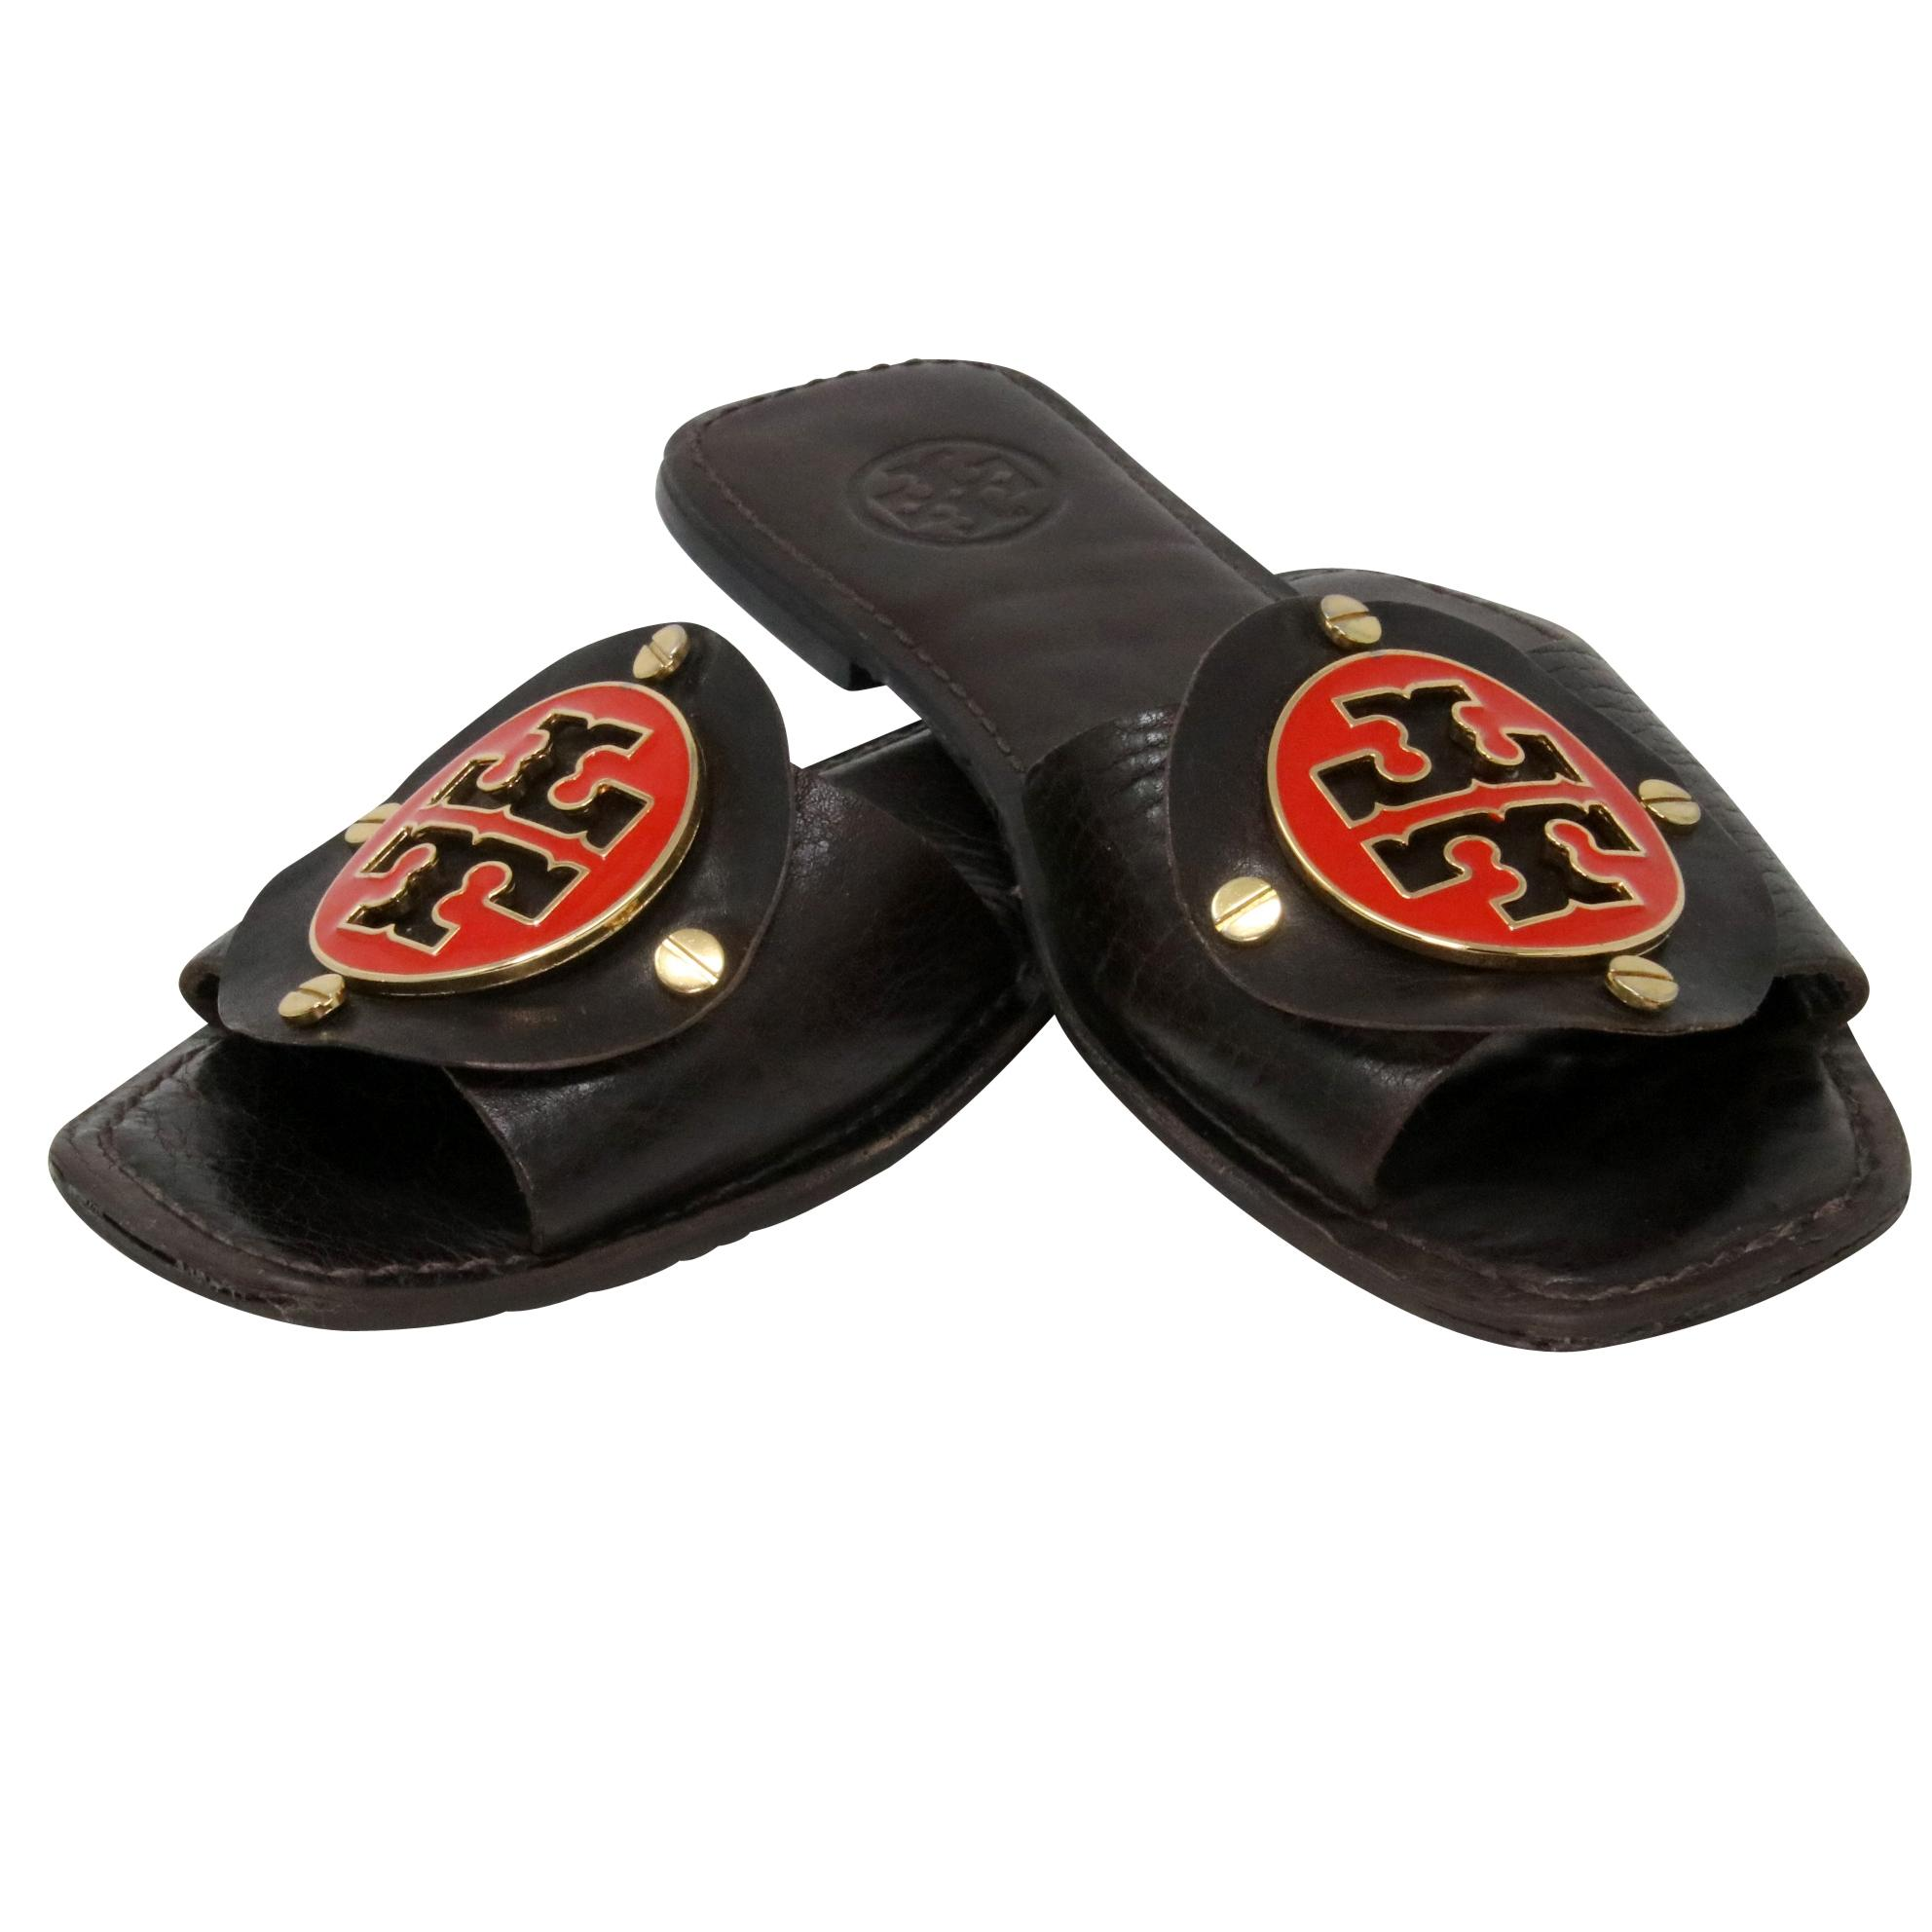 60a4cd311a02 ... Tory Burch Brown Classic Leather Studded Logo Flat Flat Flat Sandals  Size US 8 Regular ...